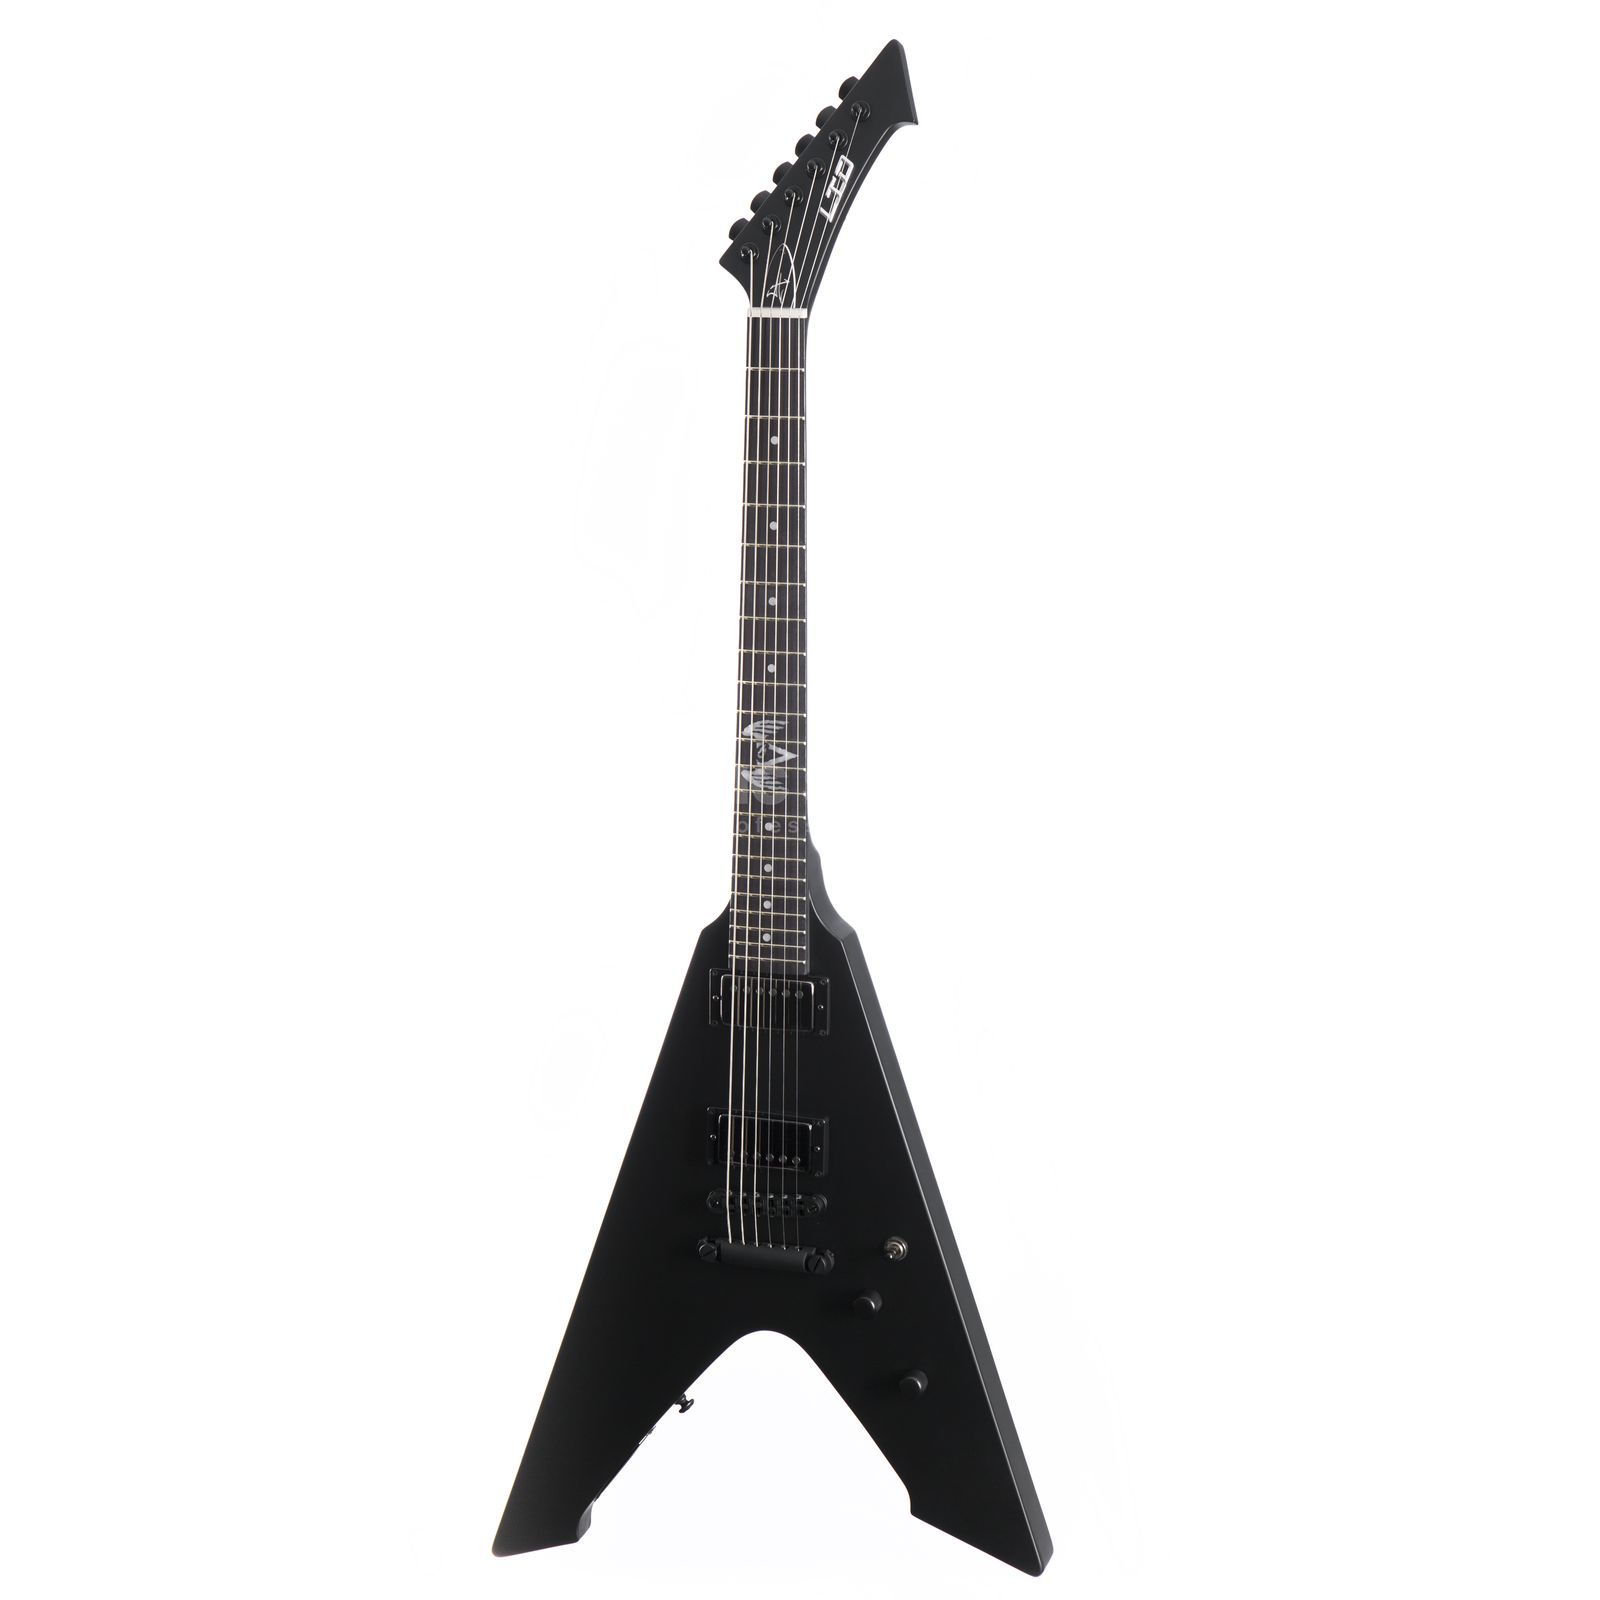 ESP LTD Vulture Black Satin James Hetfield Signature Product Image